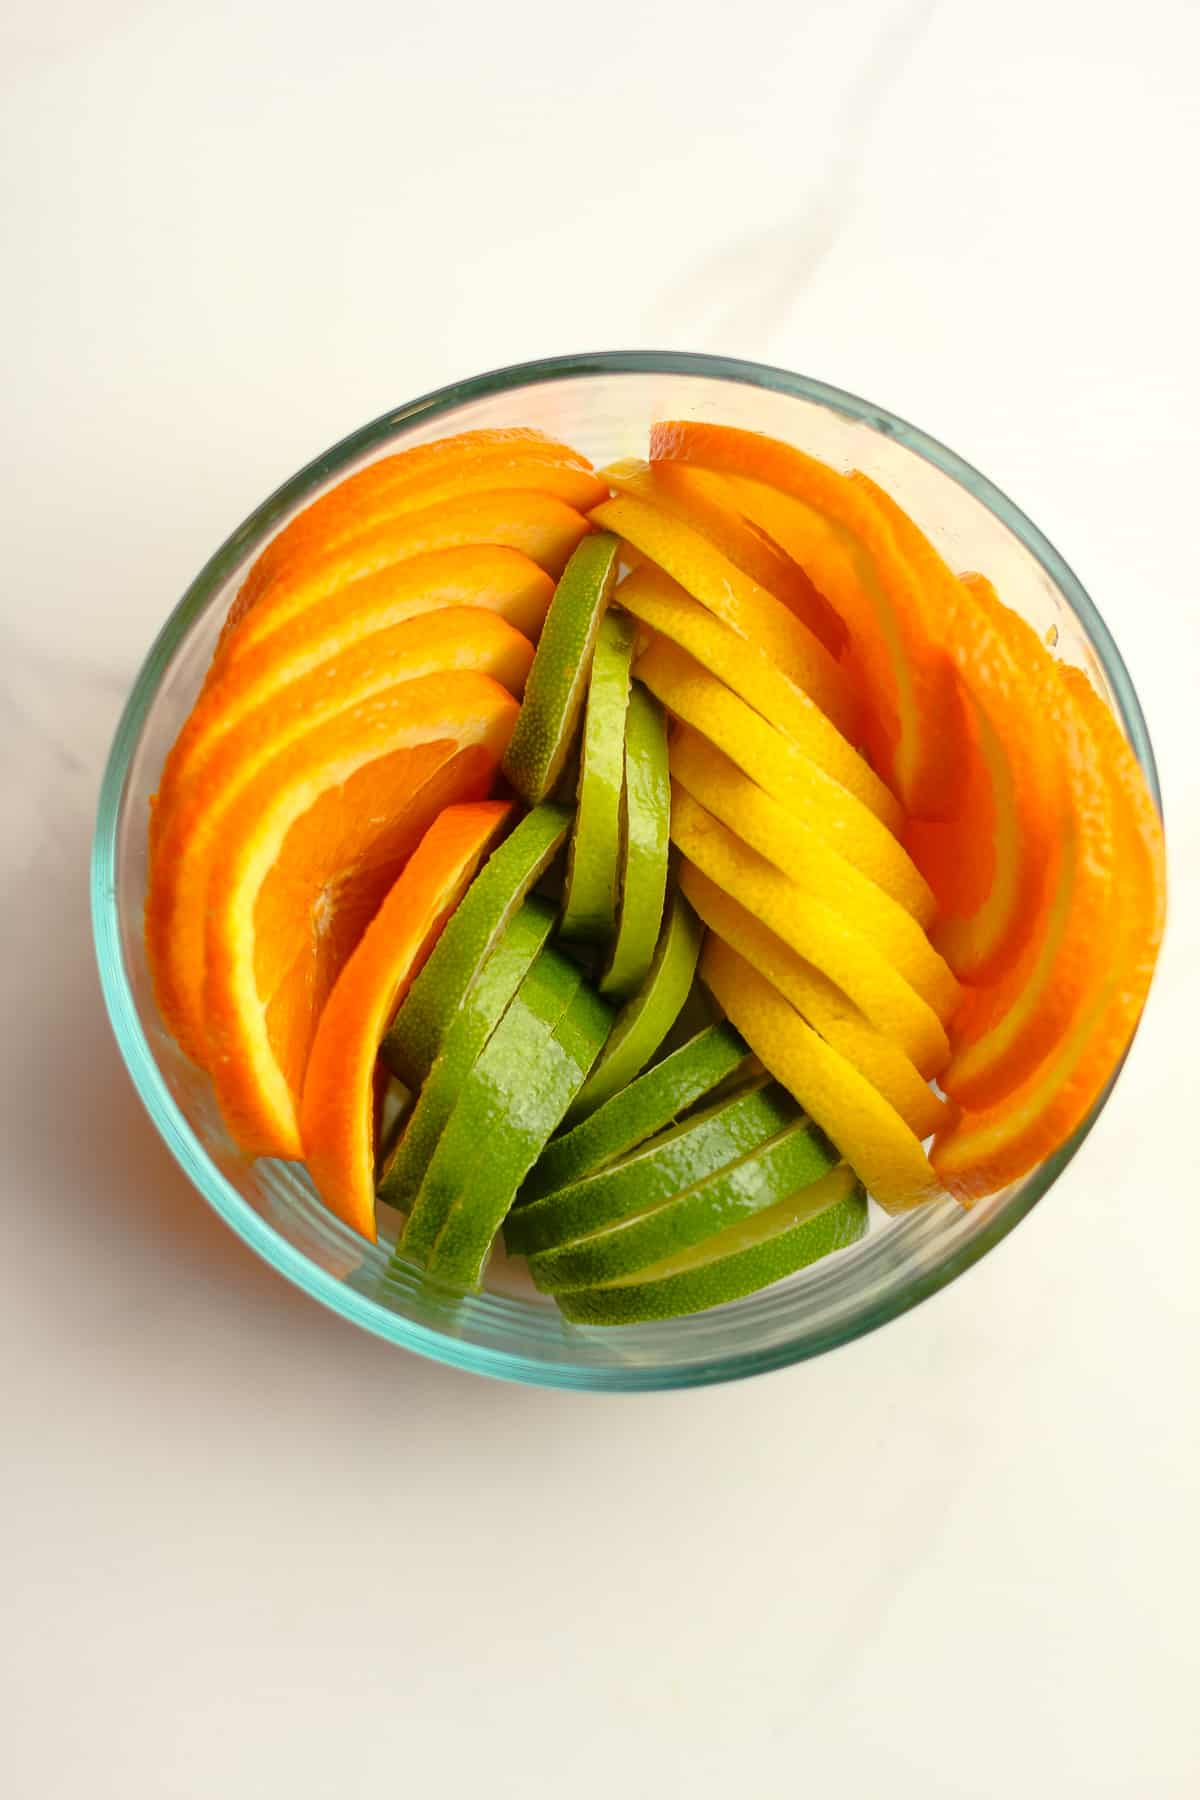 A bowl of the sliced citrus.